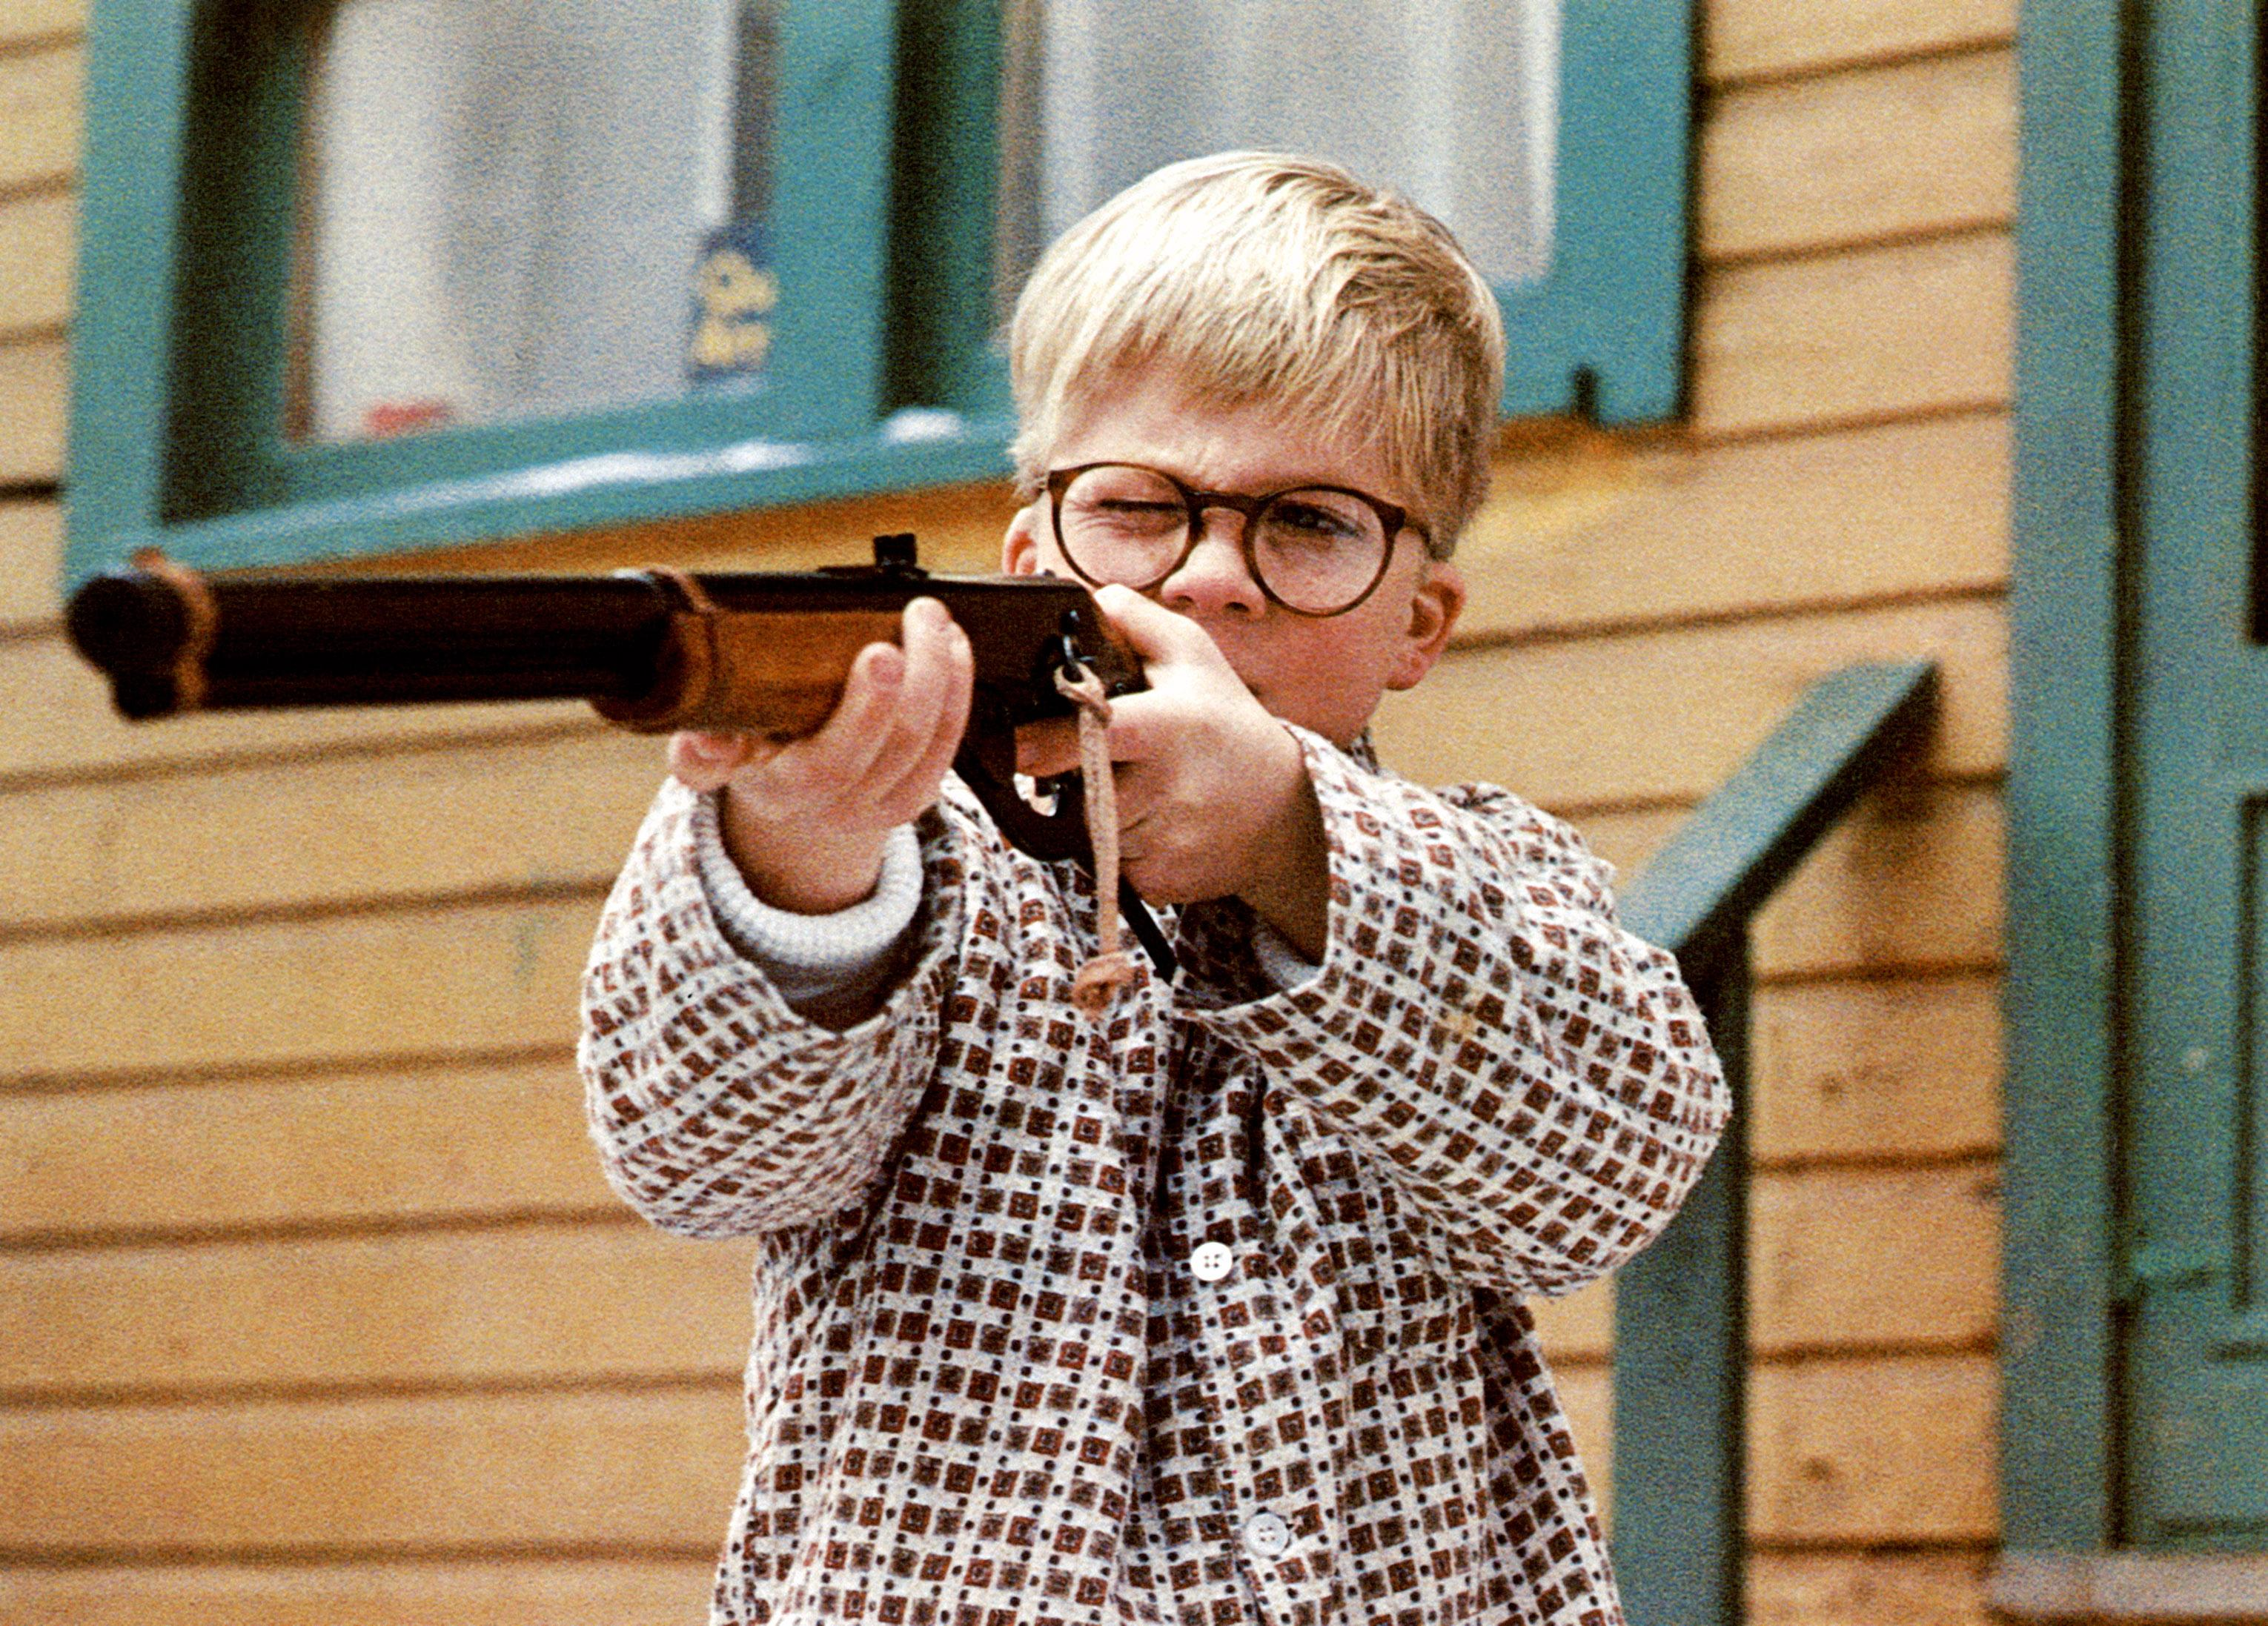 Peter Billingsley as Ralphie in A Christmas Story. (Photo: MGM/Everett Collection)